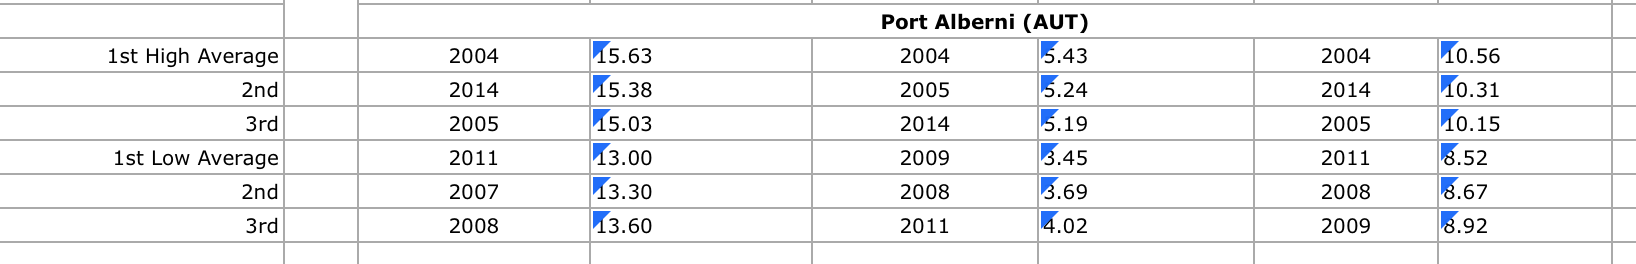 Port Alberni Airport Only since 1994.